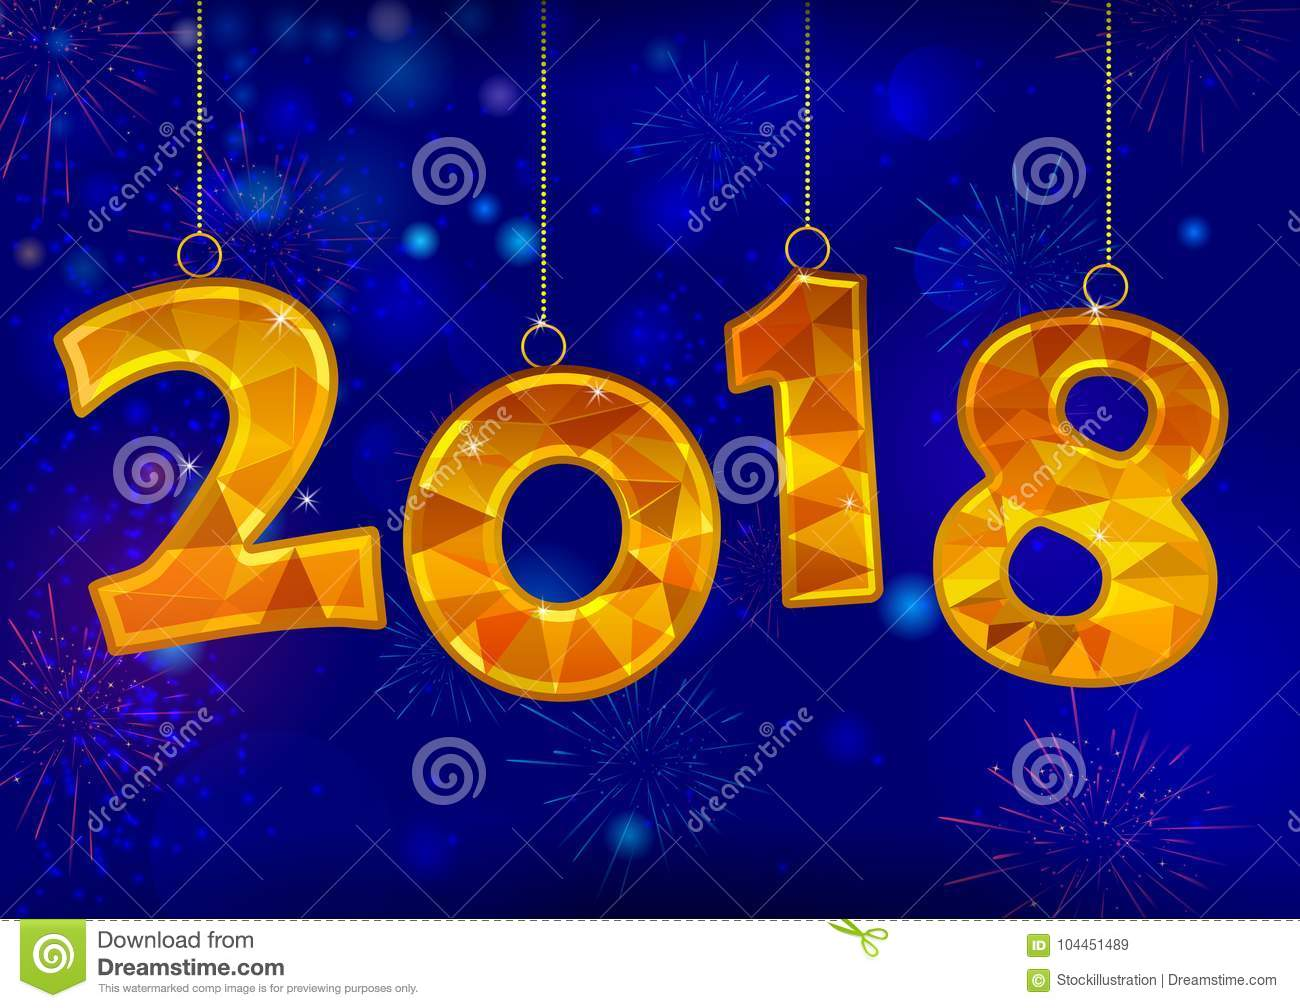 happy new year 2018 wishes greeting card template background design